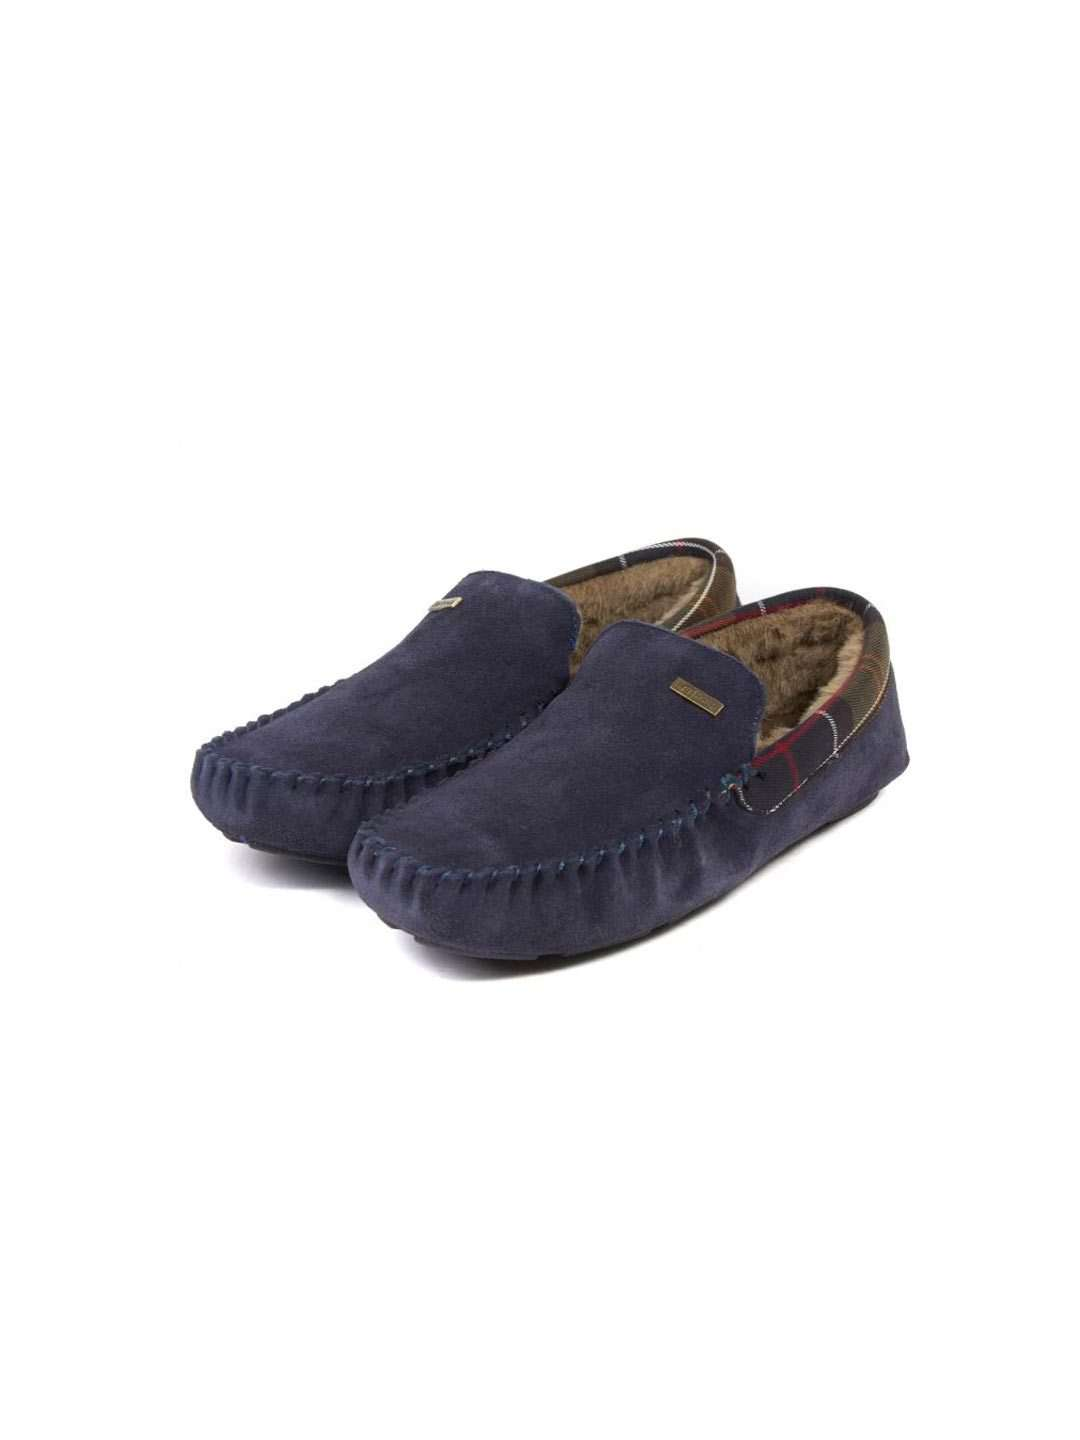 BARBOUR International Monty Slippers - Revolver Menswear Bawtry